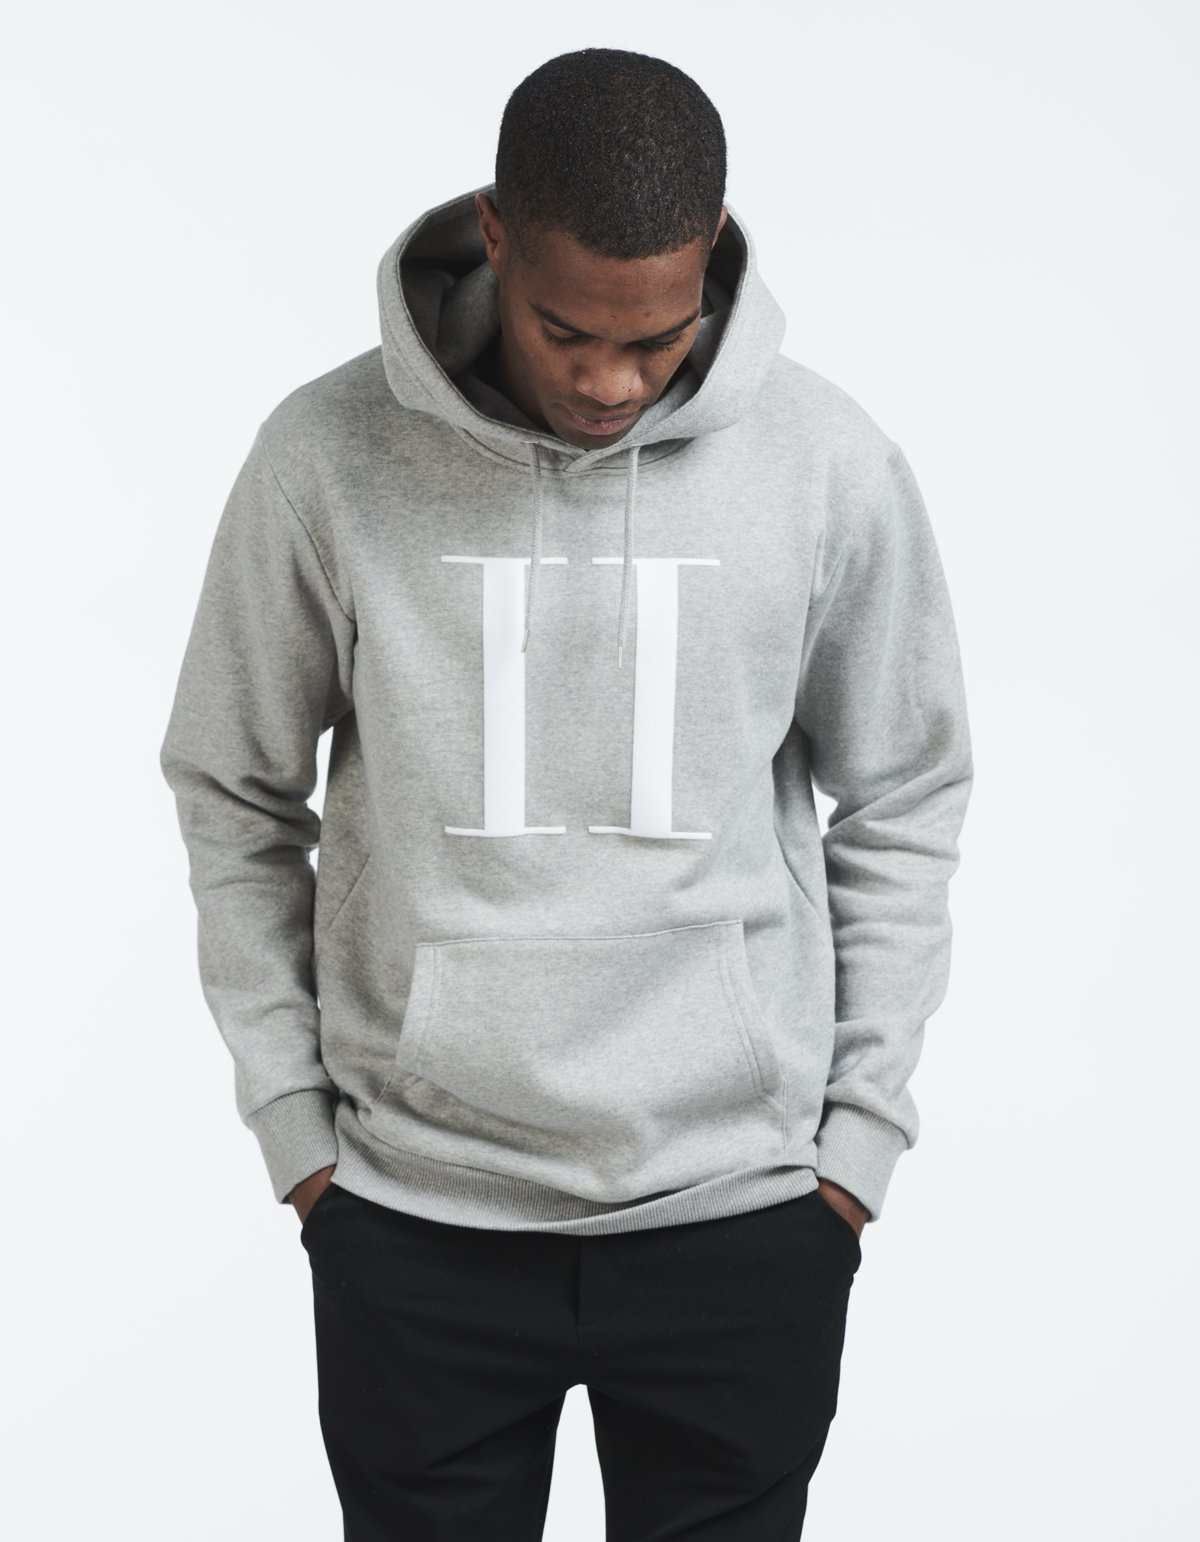 Les Deux hoodie - €87.20 - Stylish, classic and a great fit - perfect for layering and for travel